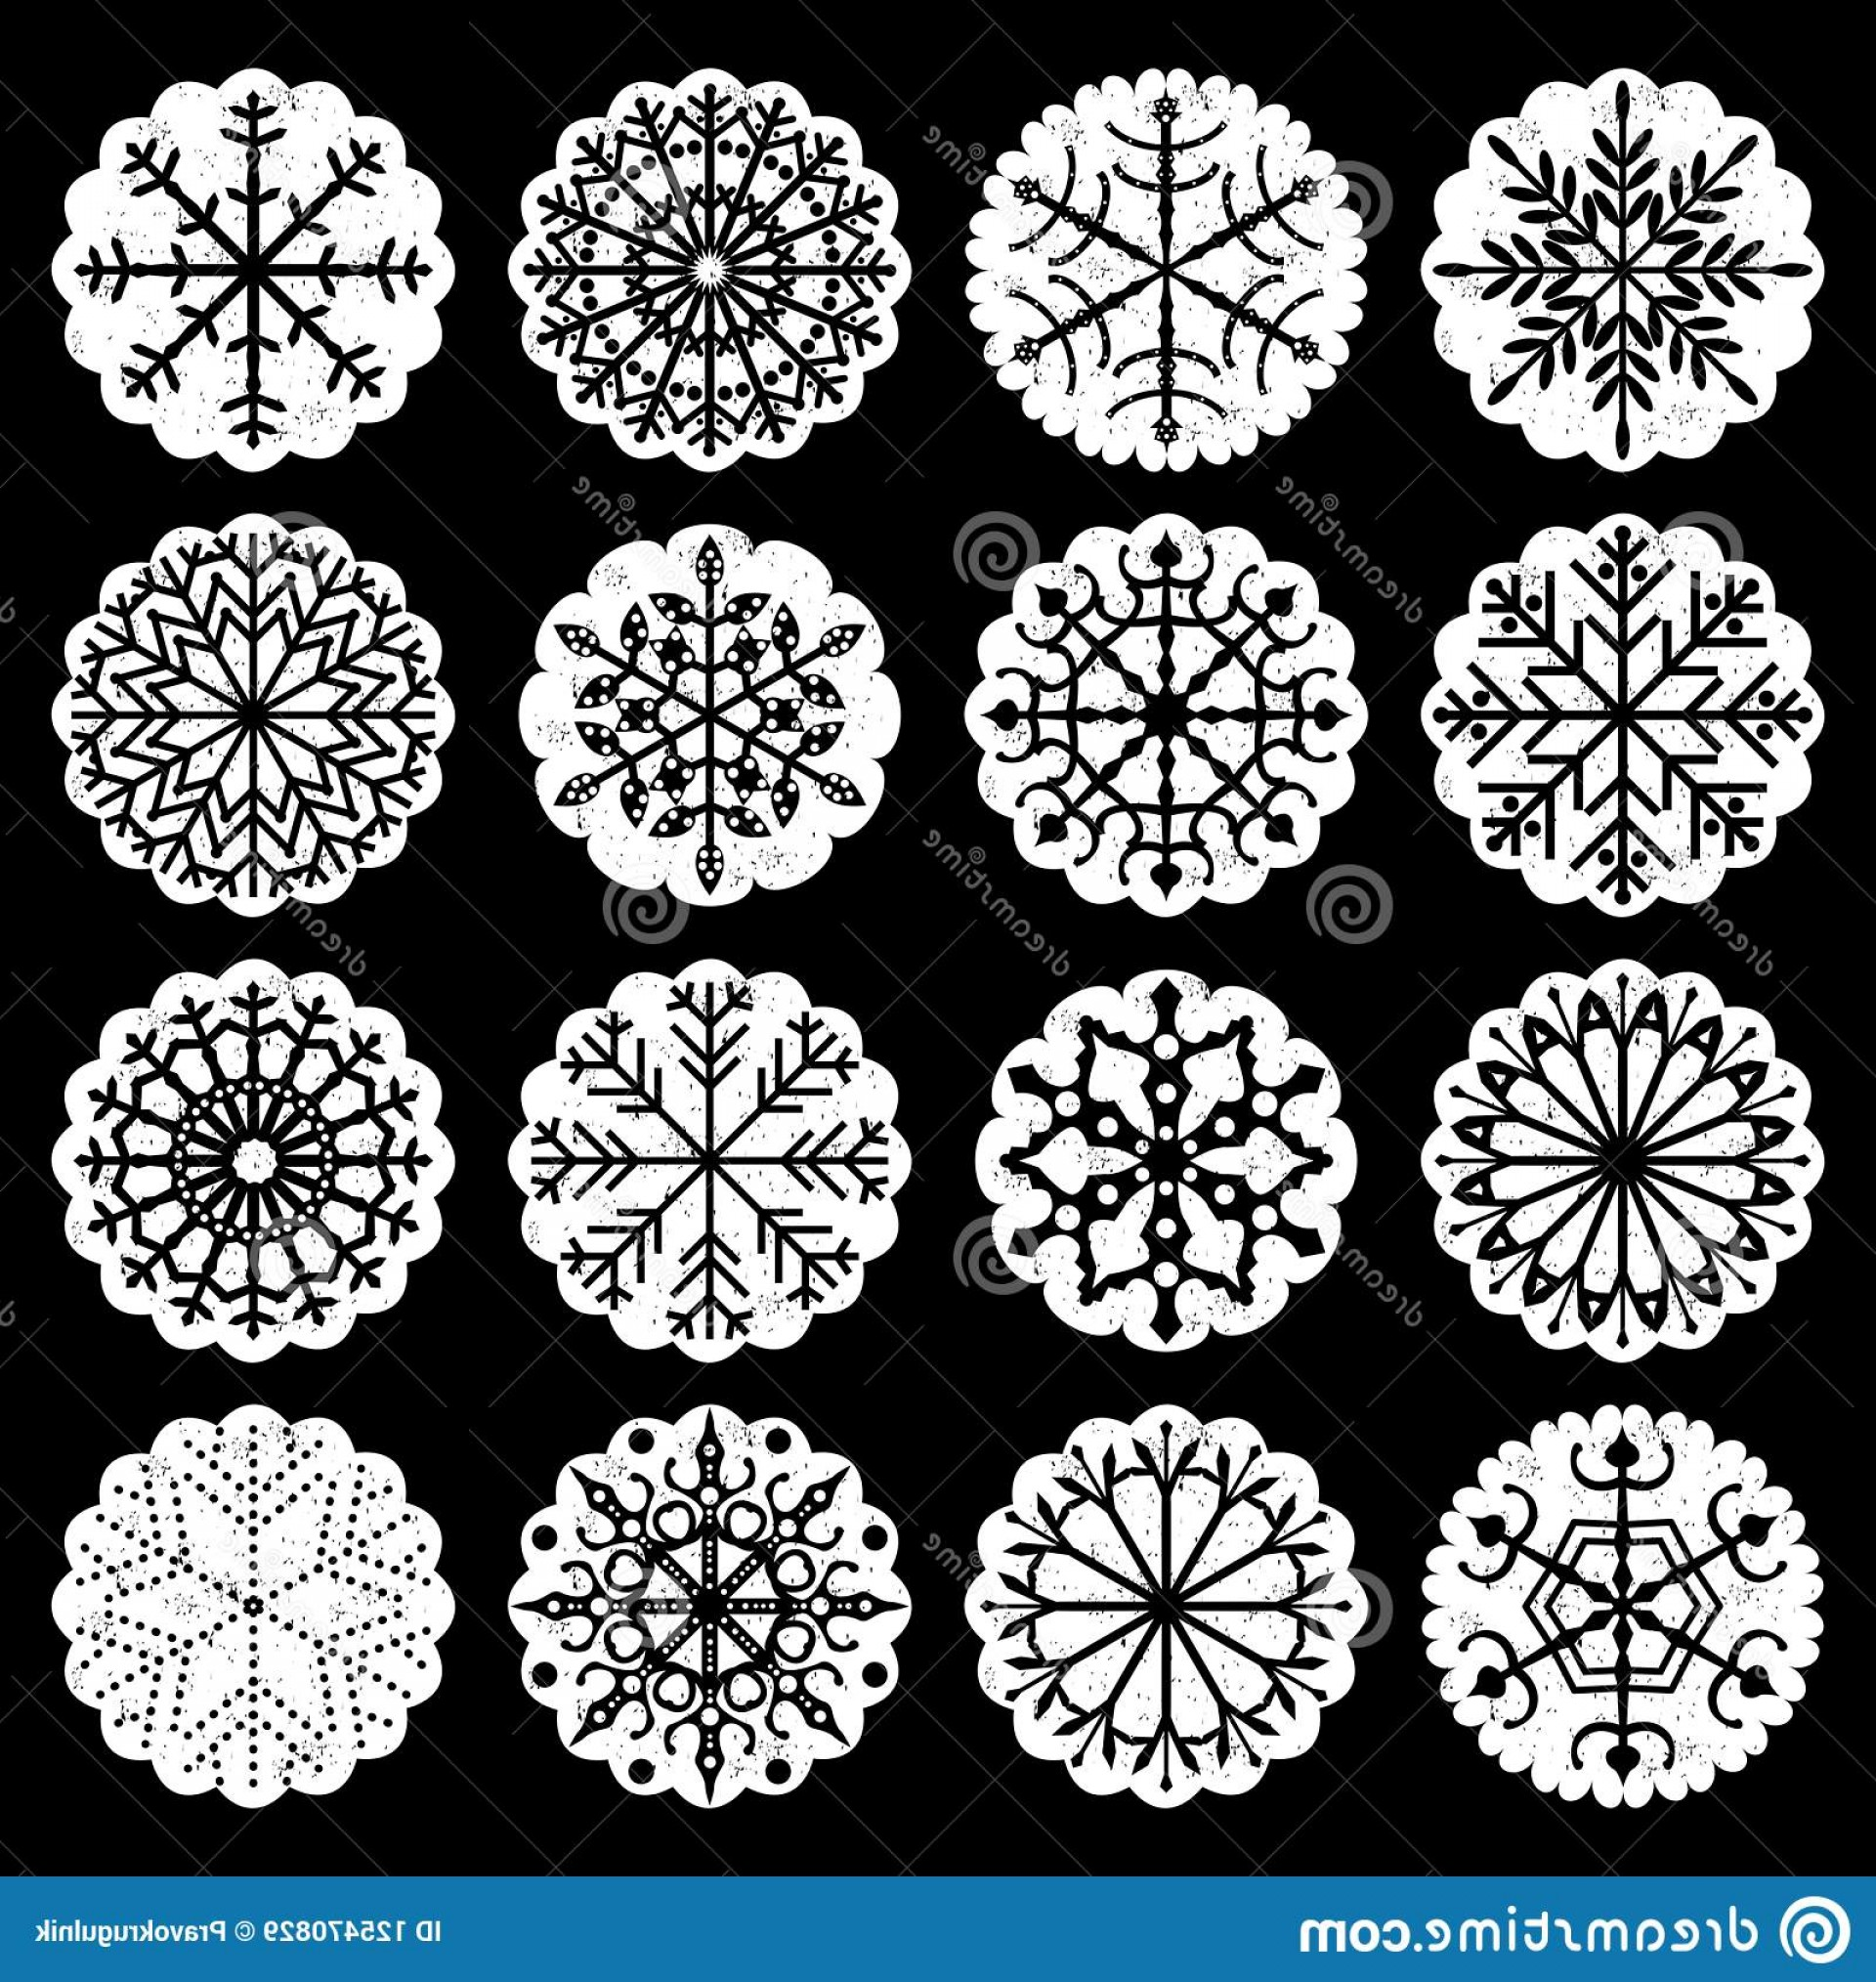 Black Scalloped Border Vector: Vector Snowflake Elements Scalloped Edges Black White Colors Winter Holiday Designs Snowflake Elements Image